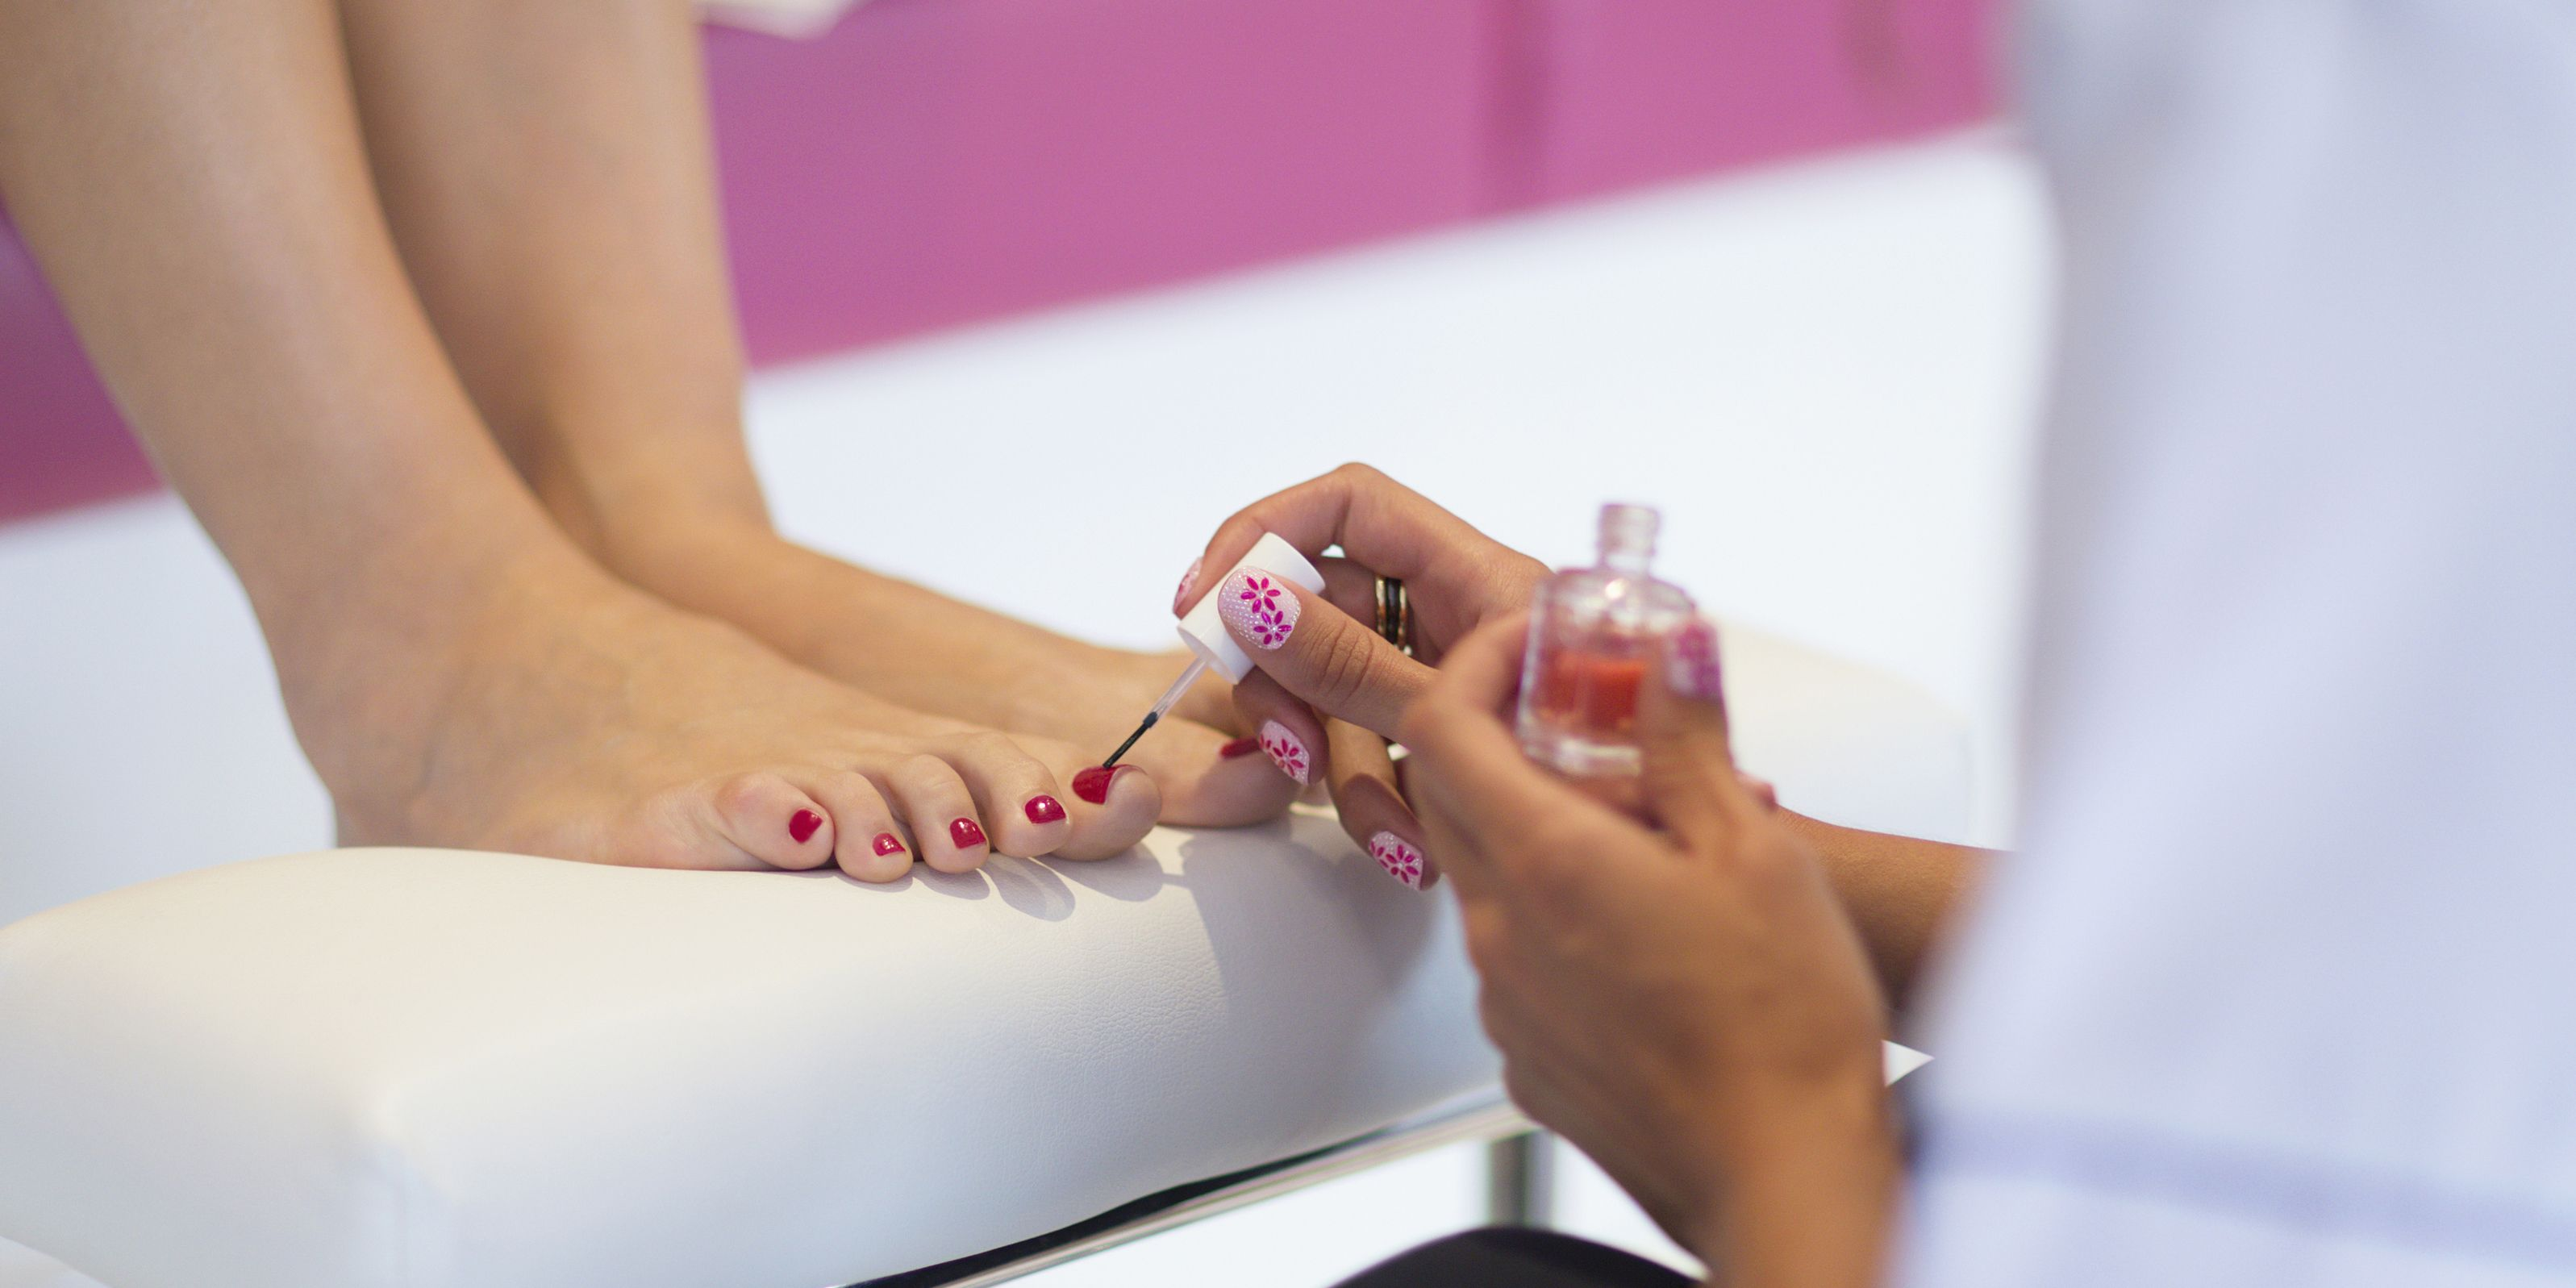 Woman Hospitalized After Getting a Pedicure at Nail Salon - Florida ...